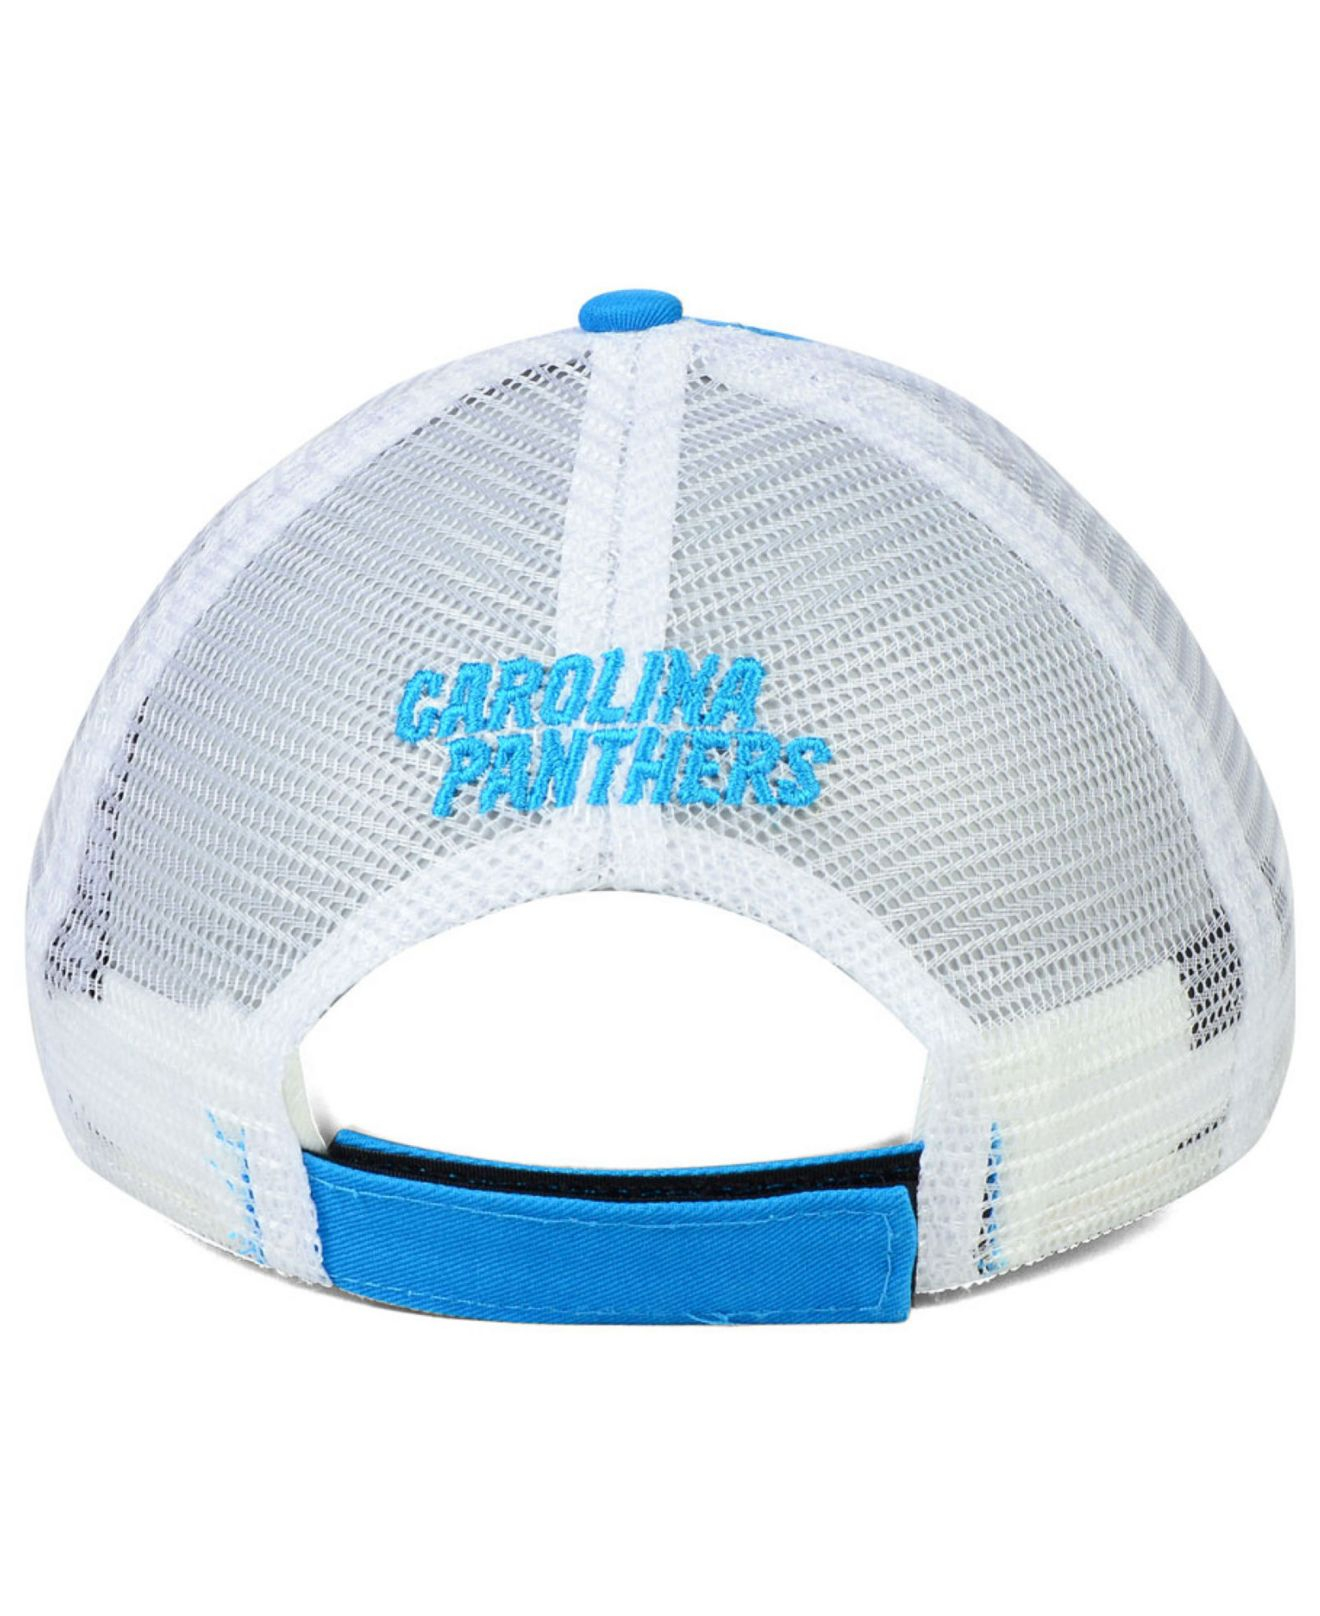 ... adjustable hat heathered gray 25.99 9163e 62bdb  wholesale lyst ktz womens  carolina panthers draft 9forty cap in blue 965e7 402ad d8c7c4d29e00